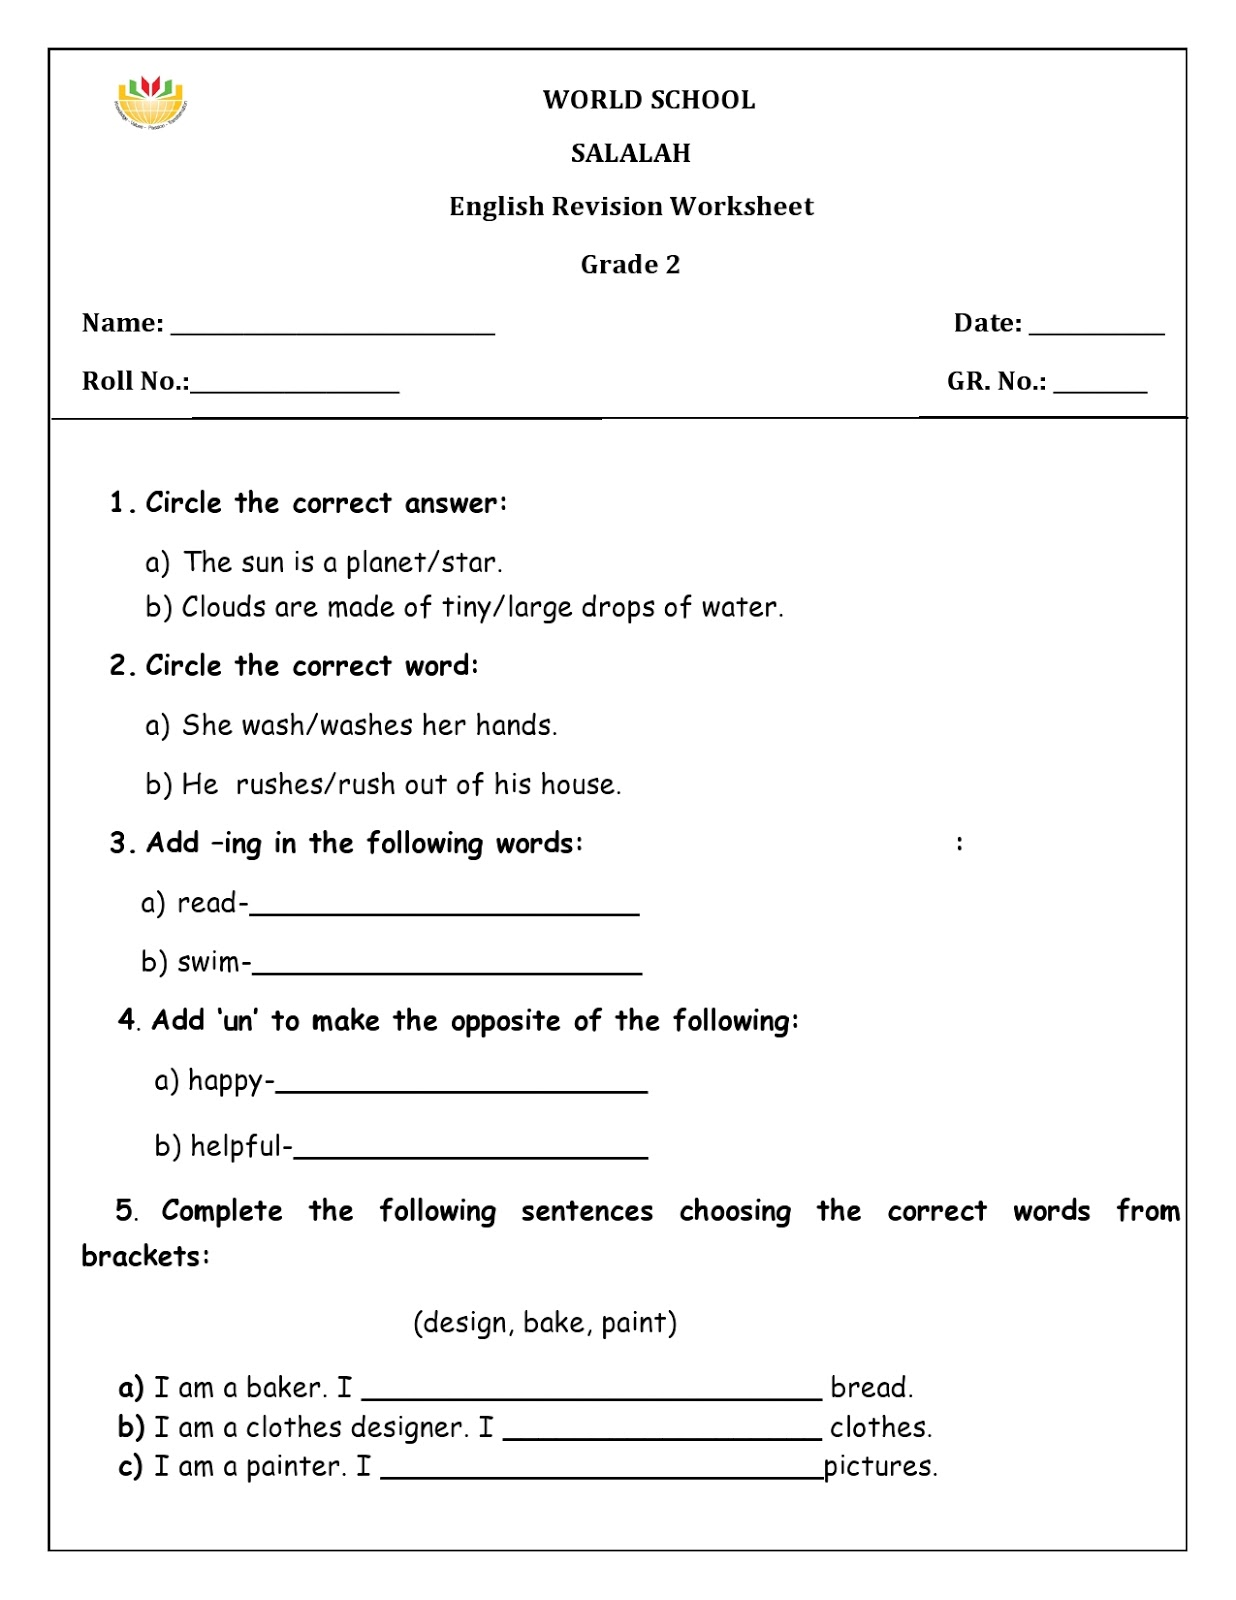 WORLD SCHOOL OMAN: Revision worksheets for grade 2